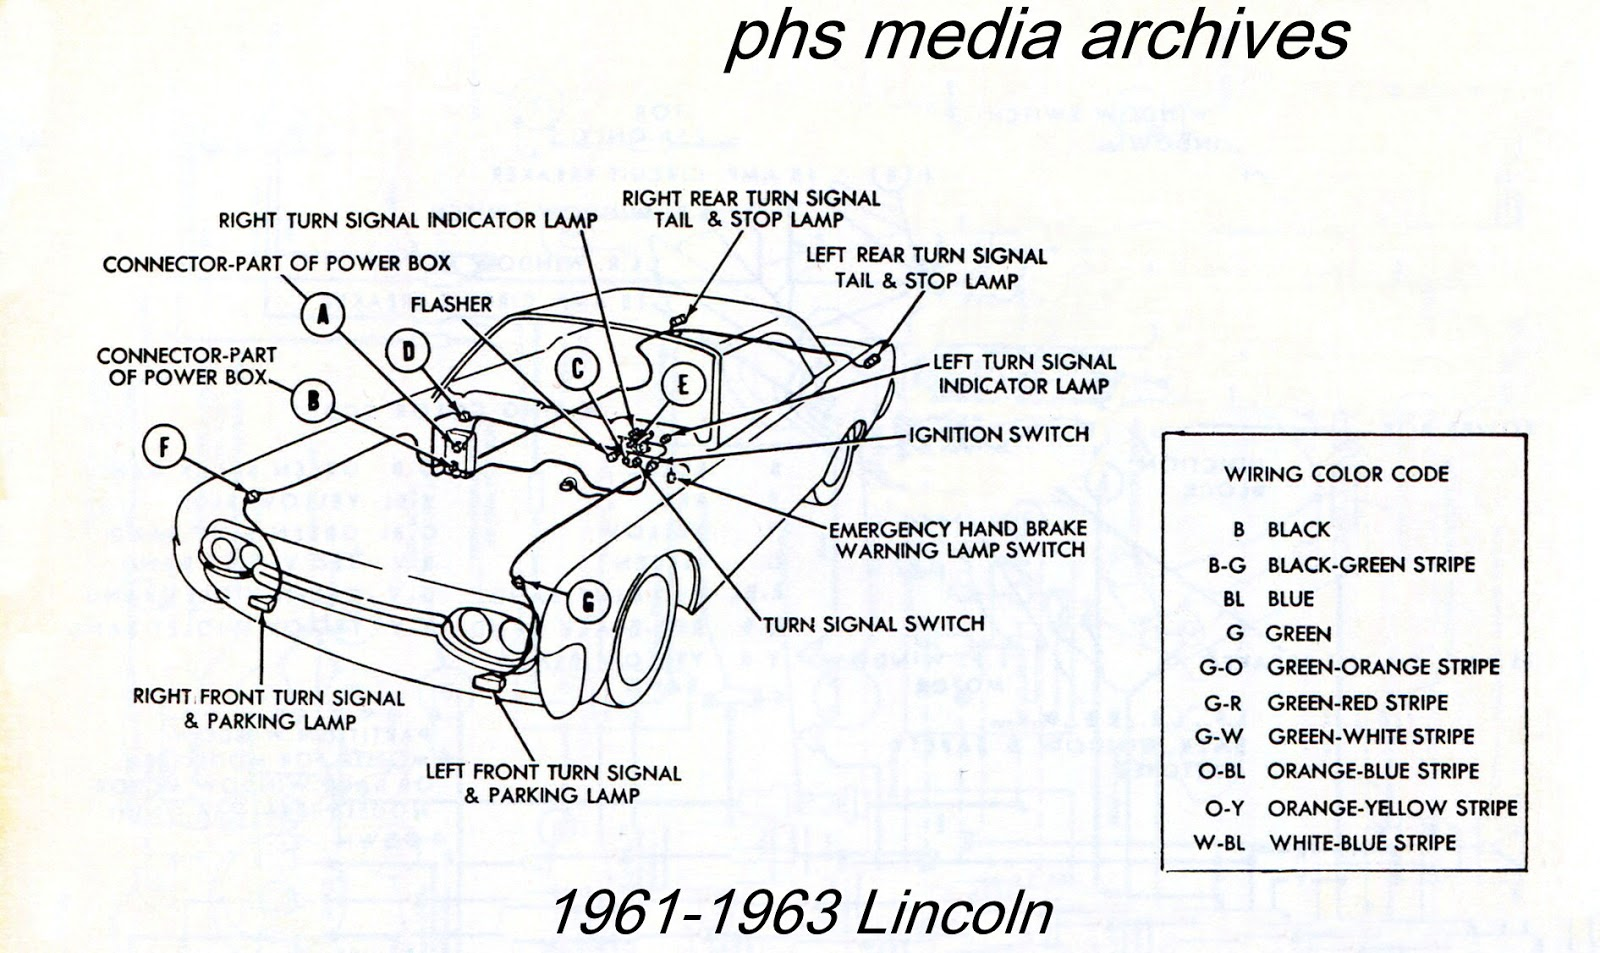 1963 Lincoln Brake Light Wiring Diagrams Led Bulb Diagram Tech Series 1960 1964 Phscollectorcarworld Rh Blogspot Com Basic Tail